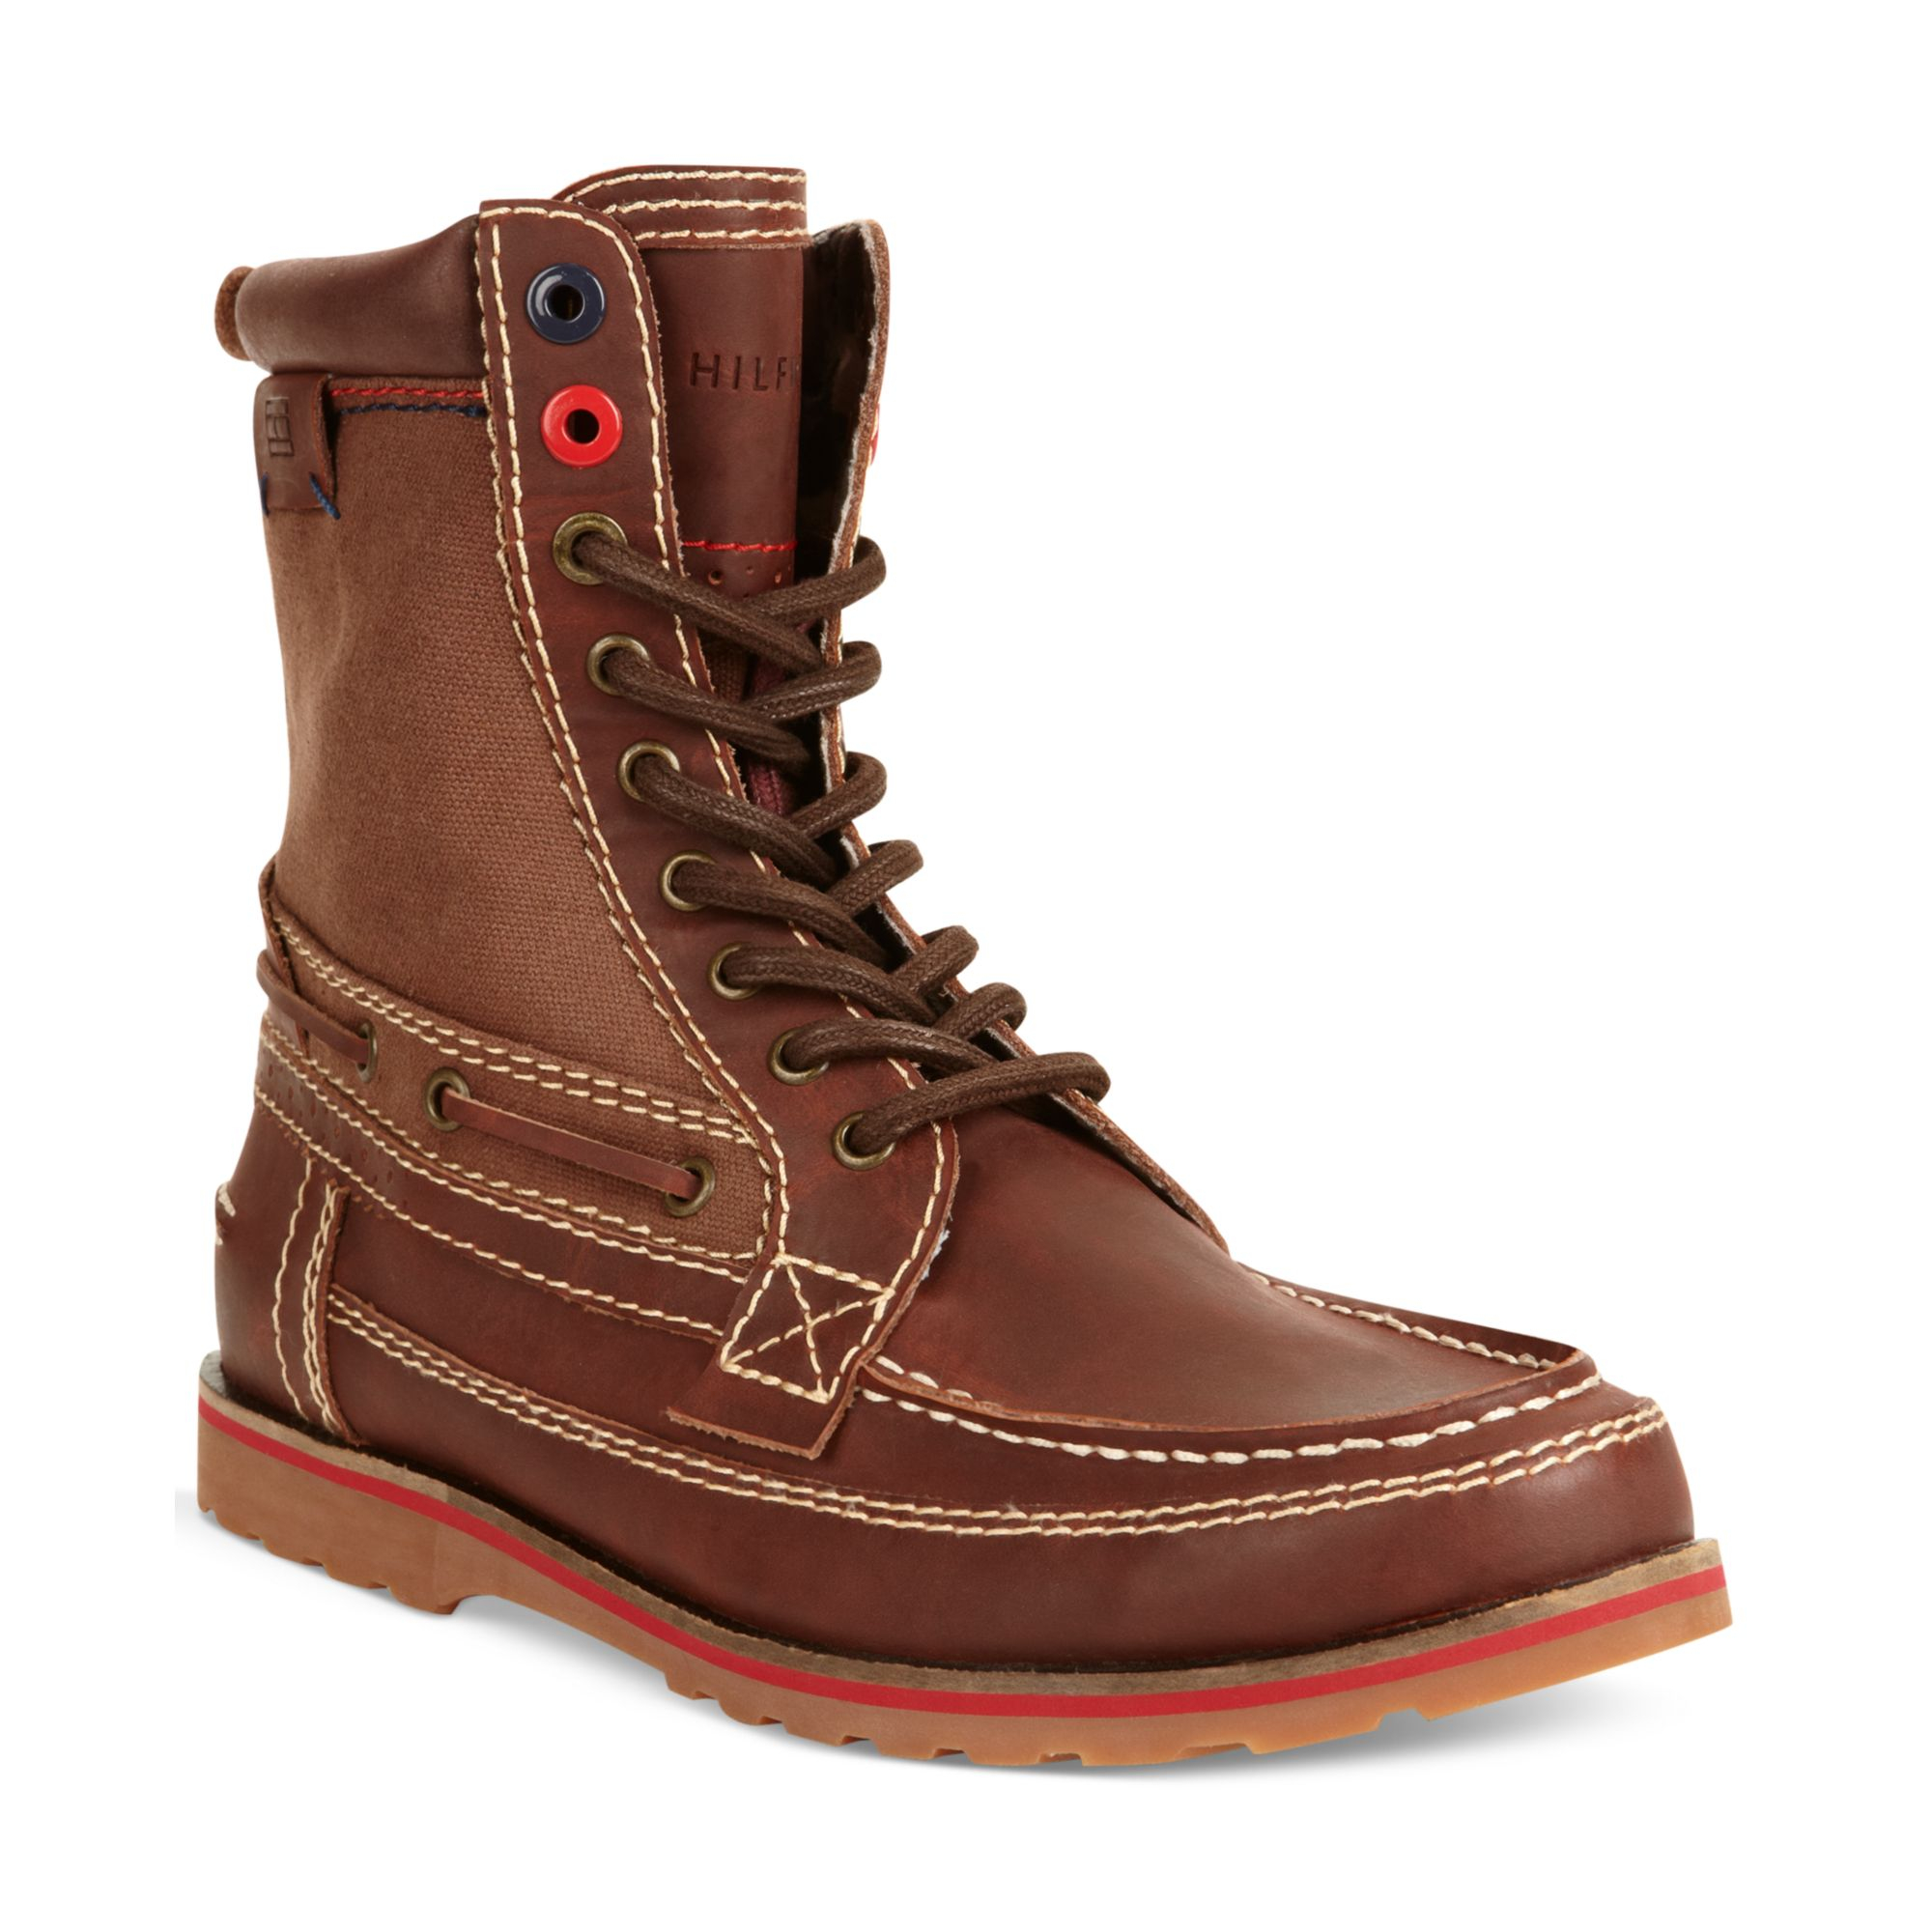 tommy hilfiger hawk boots in red for men wine lyst. Black Bedroom Furniture Sets. Home Design Ideas